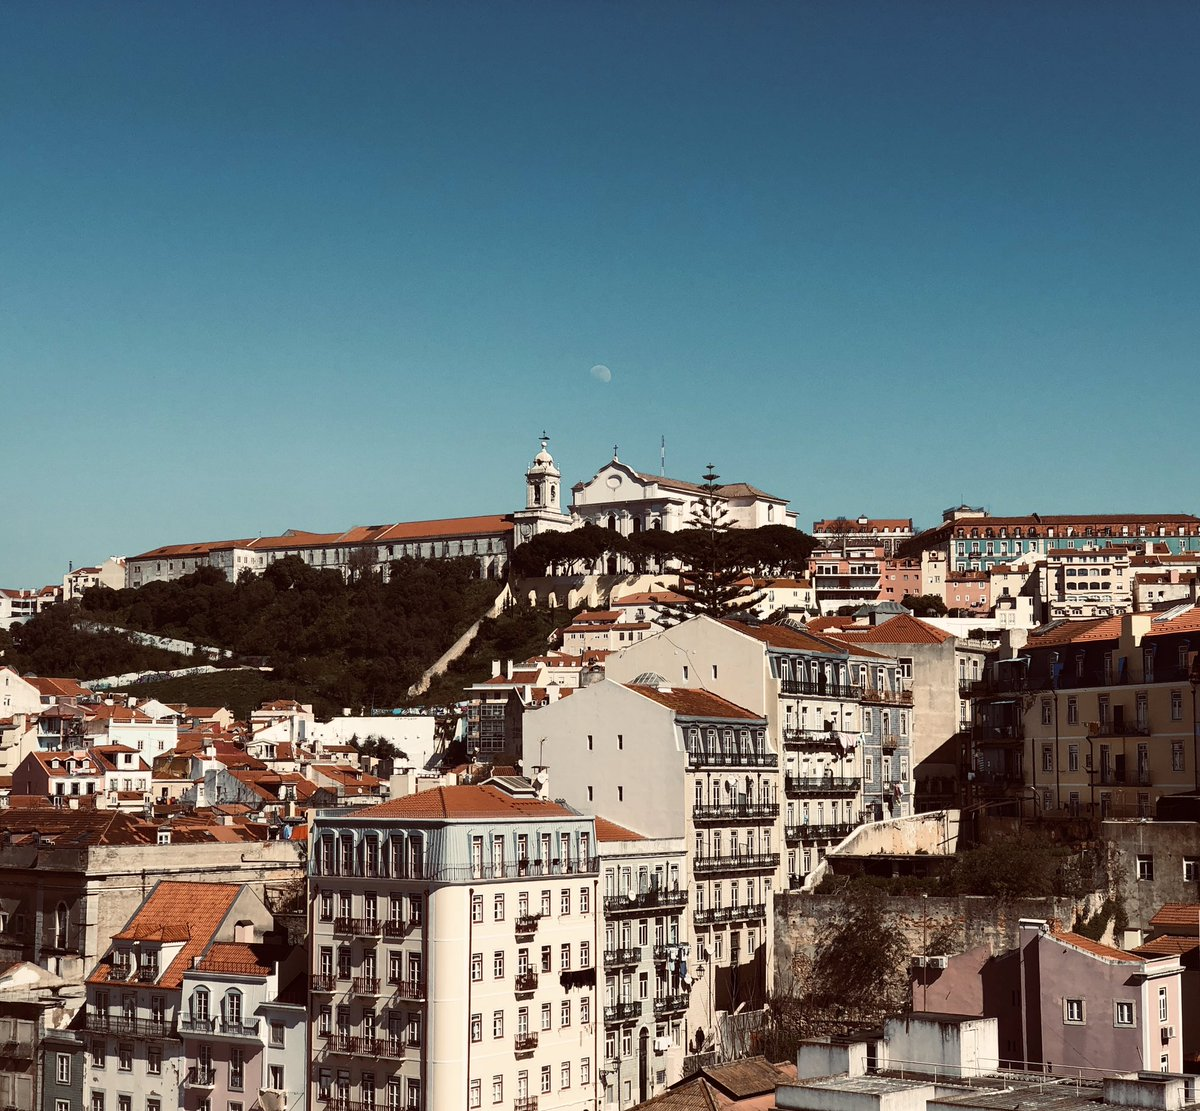 Just landed in #Lisbon for an ambitious and exciting project: I'll be starting EURONEWS' ten week road trip to listen to the voices of the people of Europe ahead of #EU elections in May. What do Europeans want and need? Coming soon @euronews #AllViews #AllVoices #AllWelcome